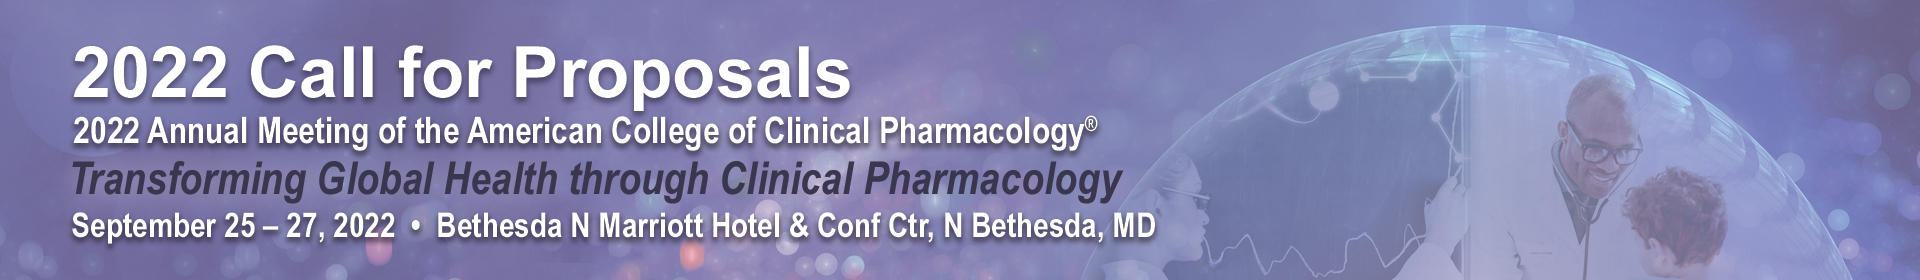 2022 Call for Proposals | American College of Clinical Pharmacology Annual Meeting | September 25 - 27, 2022